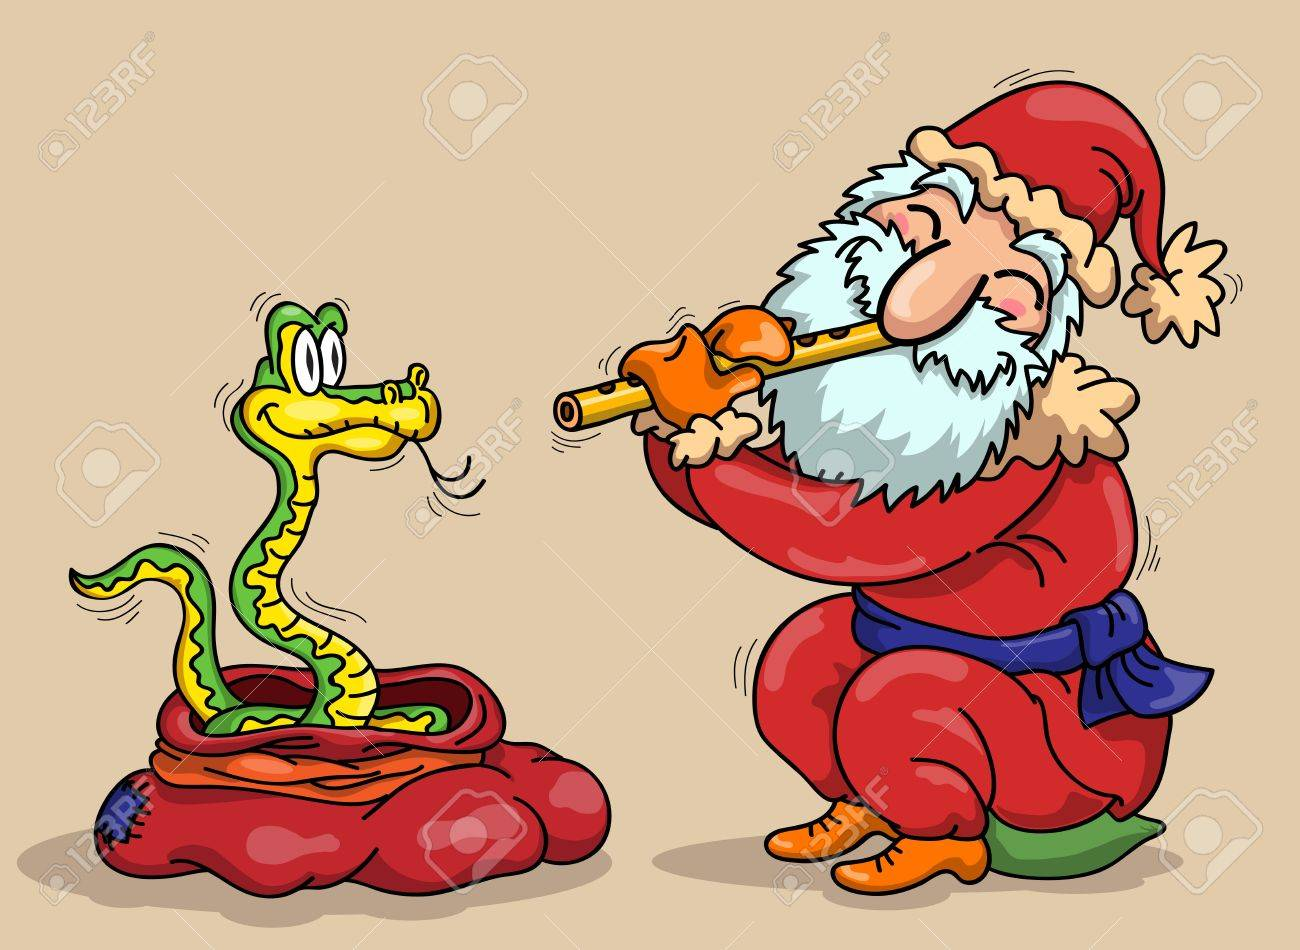 Santa Claus with flute and snake - a symbol of 2013 Stock Vector - 14661001